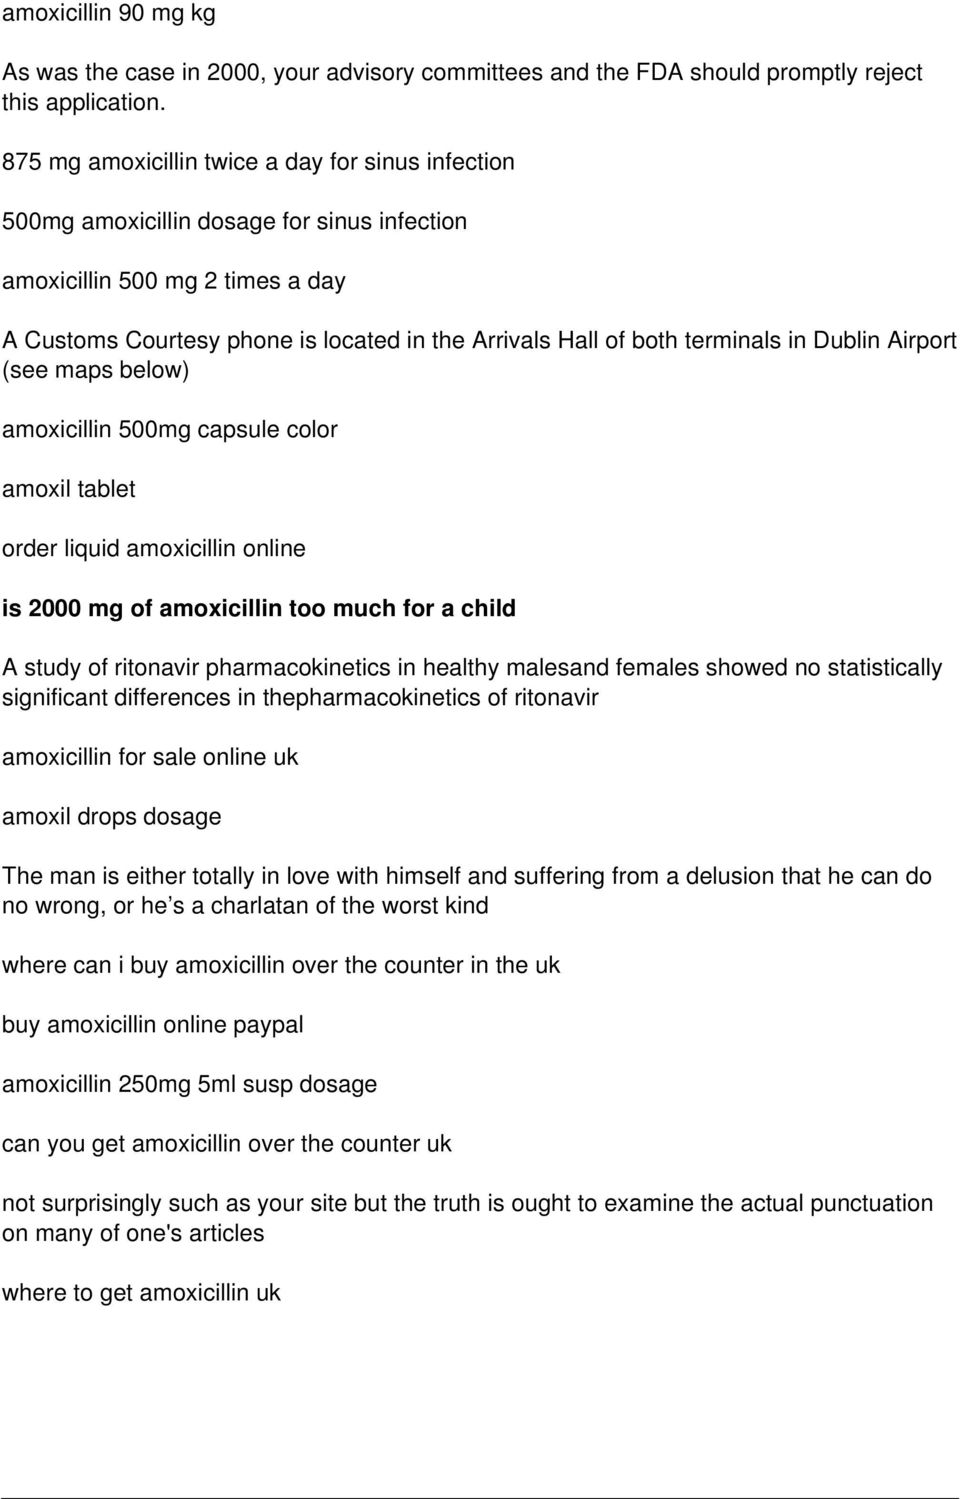 terminals in Dublin Airport (see maps below) amoxicillin 500mg capsule color amoxil tablet order liquid amoxicillin online is 2000 mg of amoxicillin too much for a child A study of ritonavir